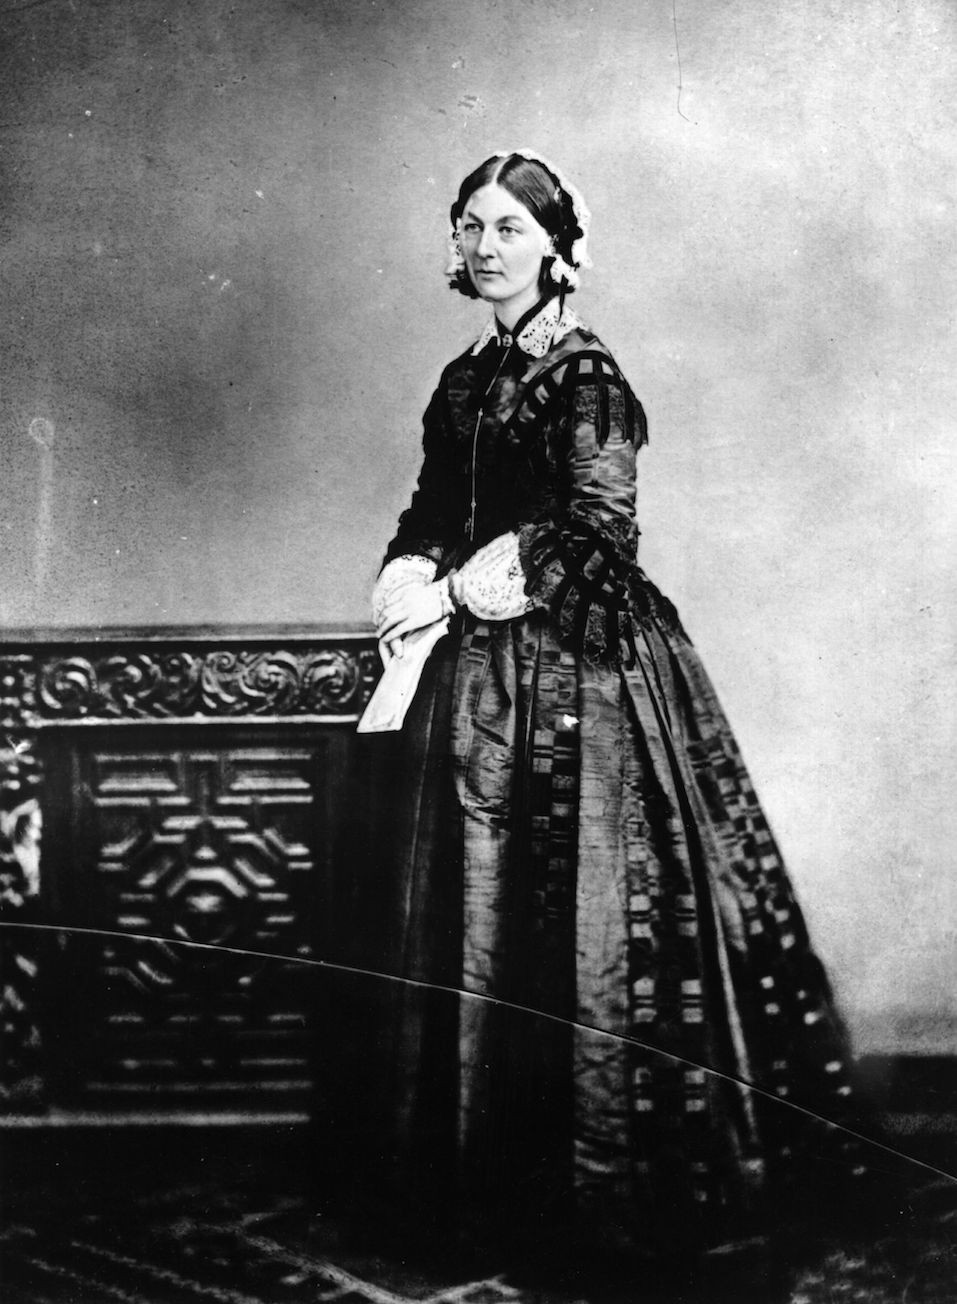 English nurse, hospital reformer and philanthropist Florence Nightingale